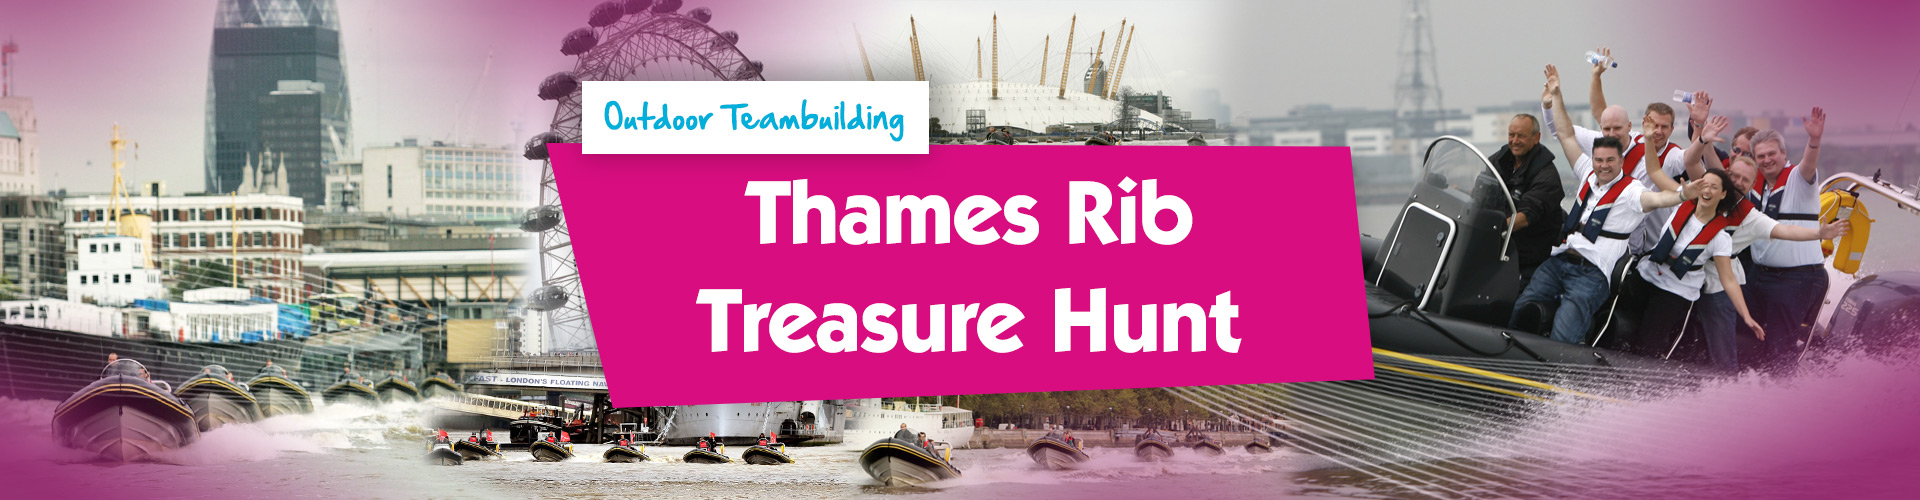 TB OutdoorEvents 1920x500 Banner ThamesRibTreasureHunt (1)